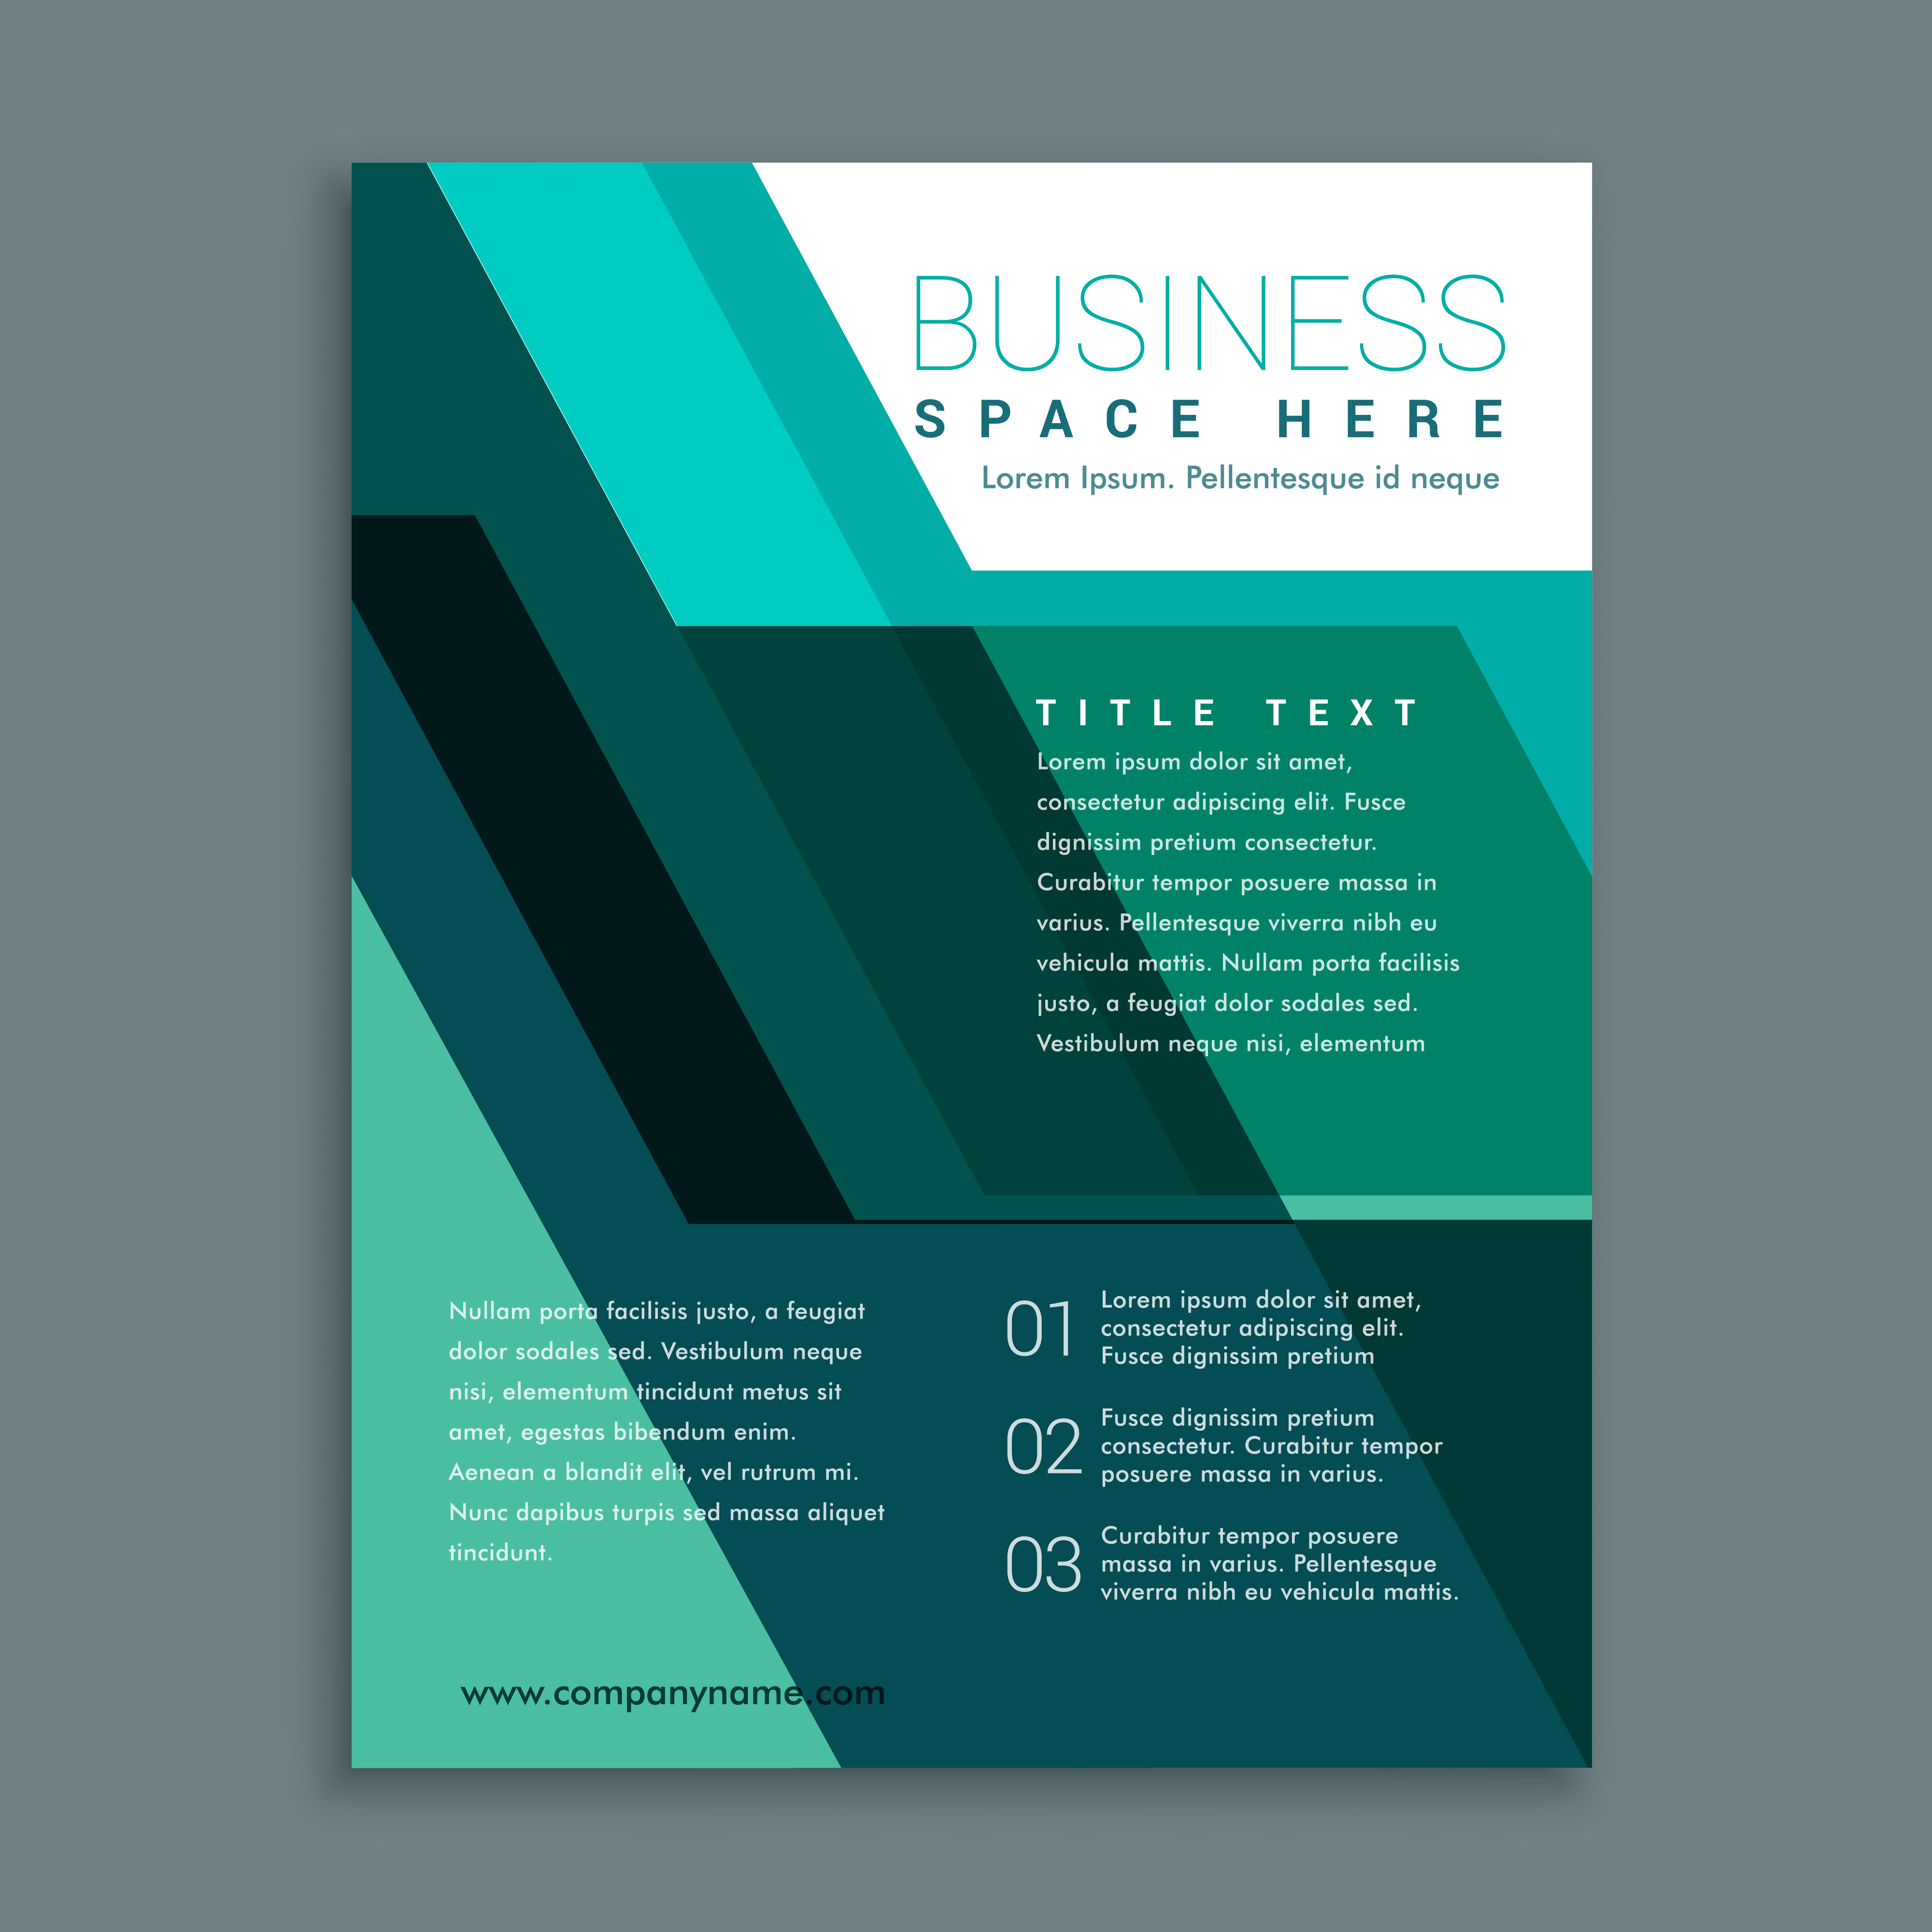 Geometric Business Brochure Design In Turquoise Color Download Free Vector Art Stock Graphics